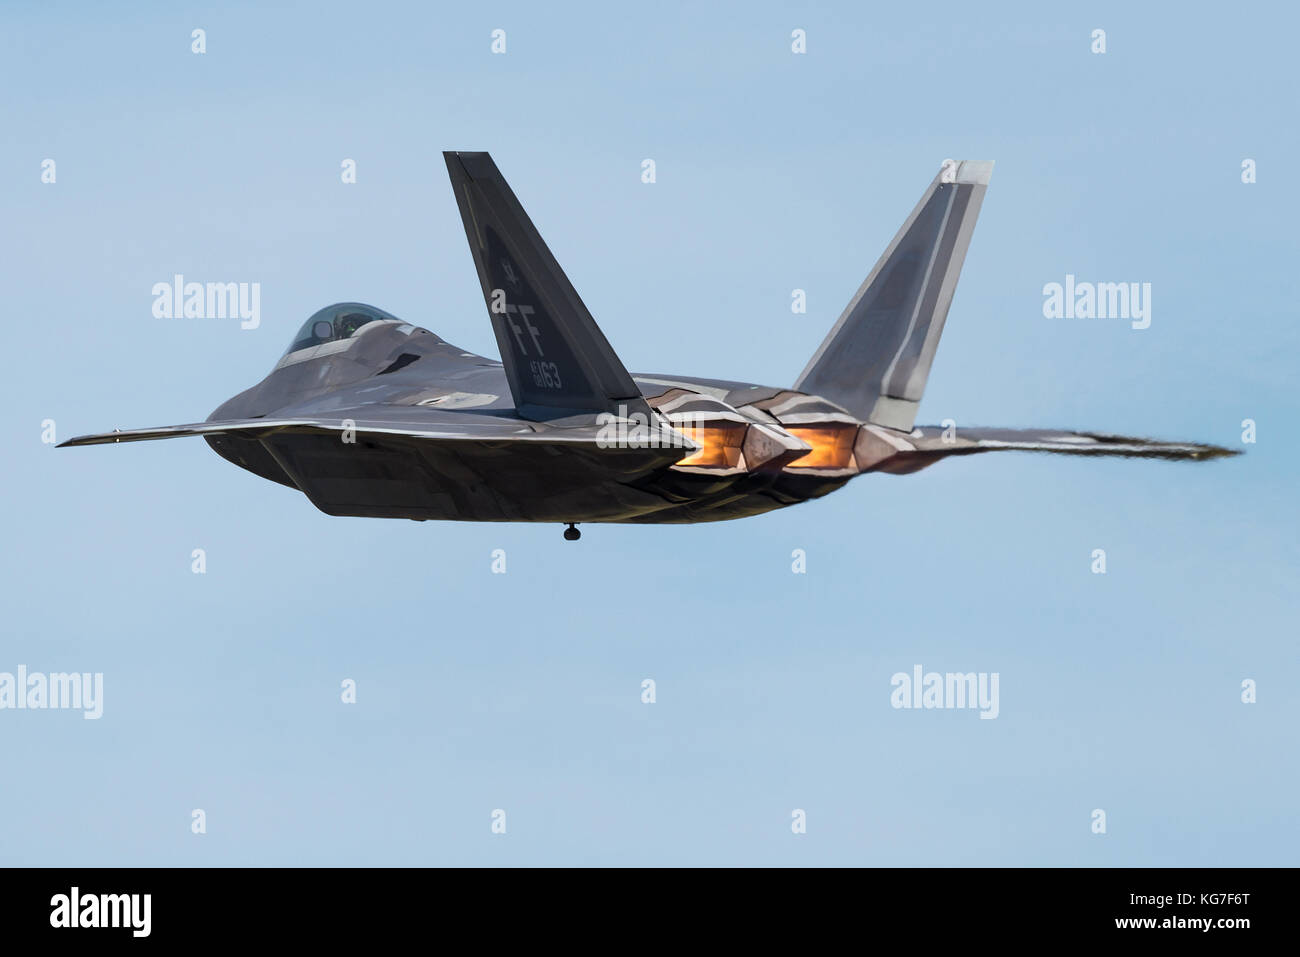 A F-22 Raptor fifth-generation, single-seat, twin-engine, all-weather stealth tactical fighter aircraft developed - Stock Image